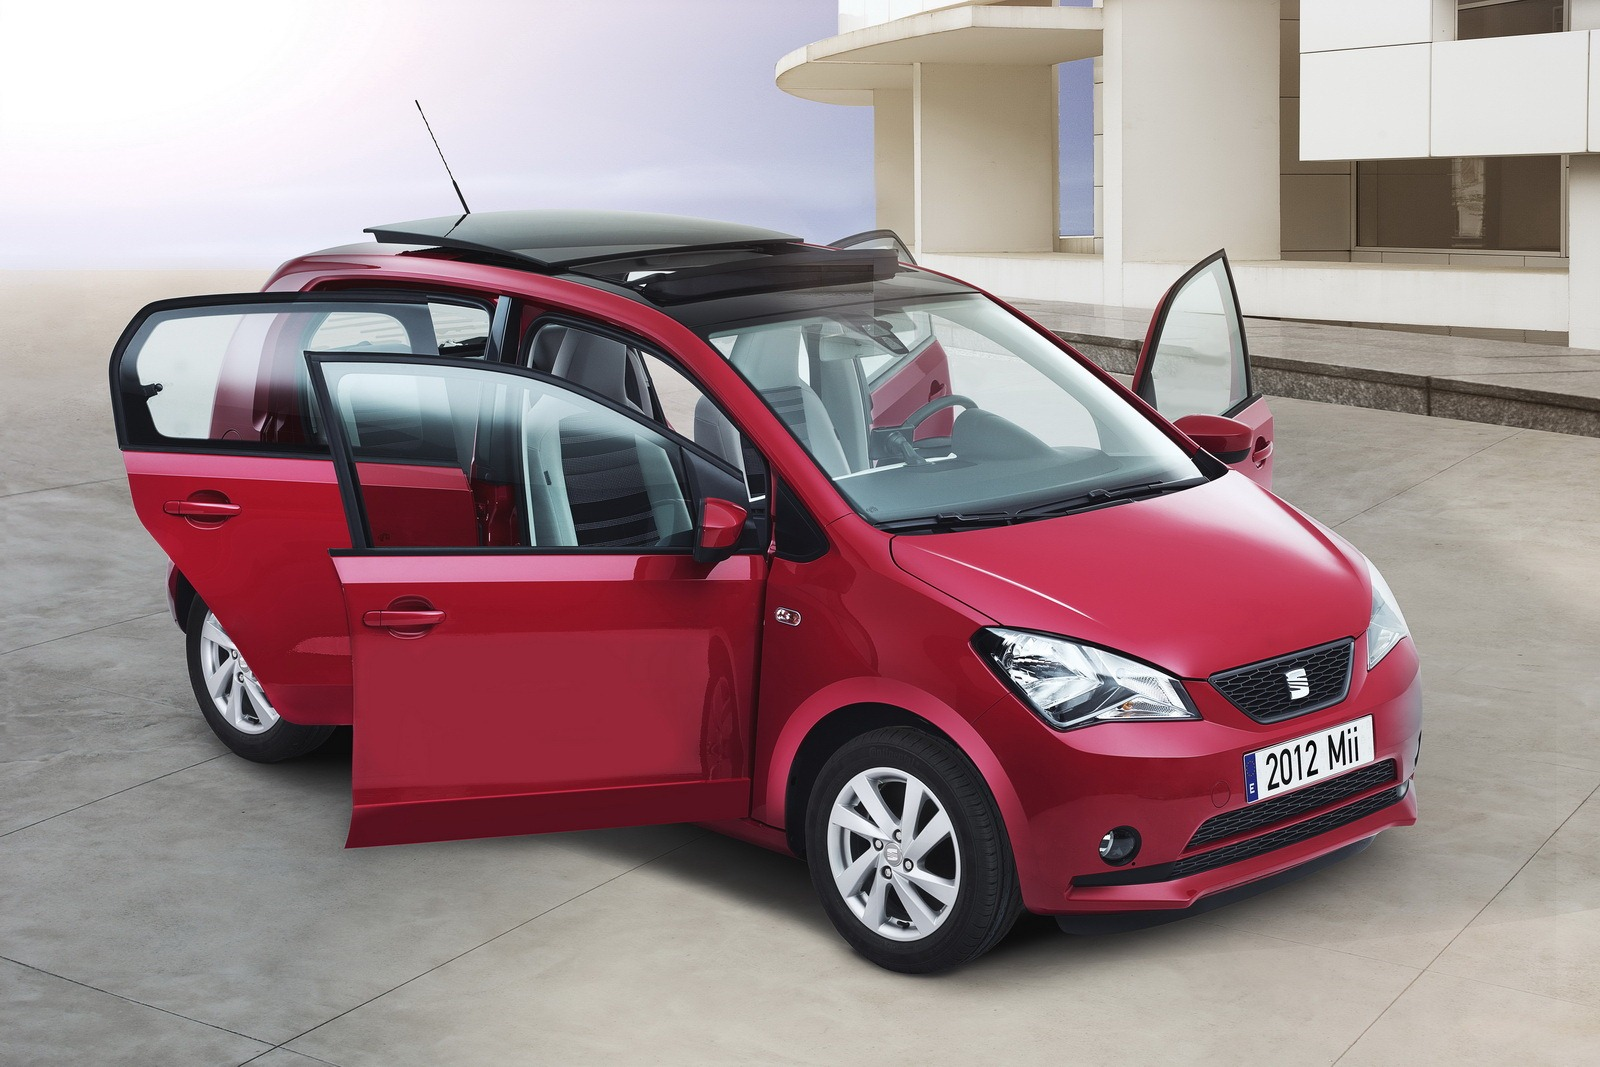 2012 SEAT Mii 5 Door City Car 1 2012 SEAT Mii 5 Door City Car   Aerodynamic and Highly Fashionable